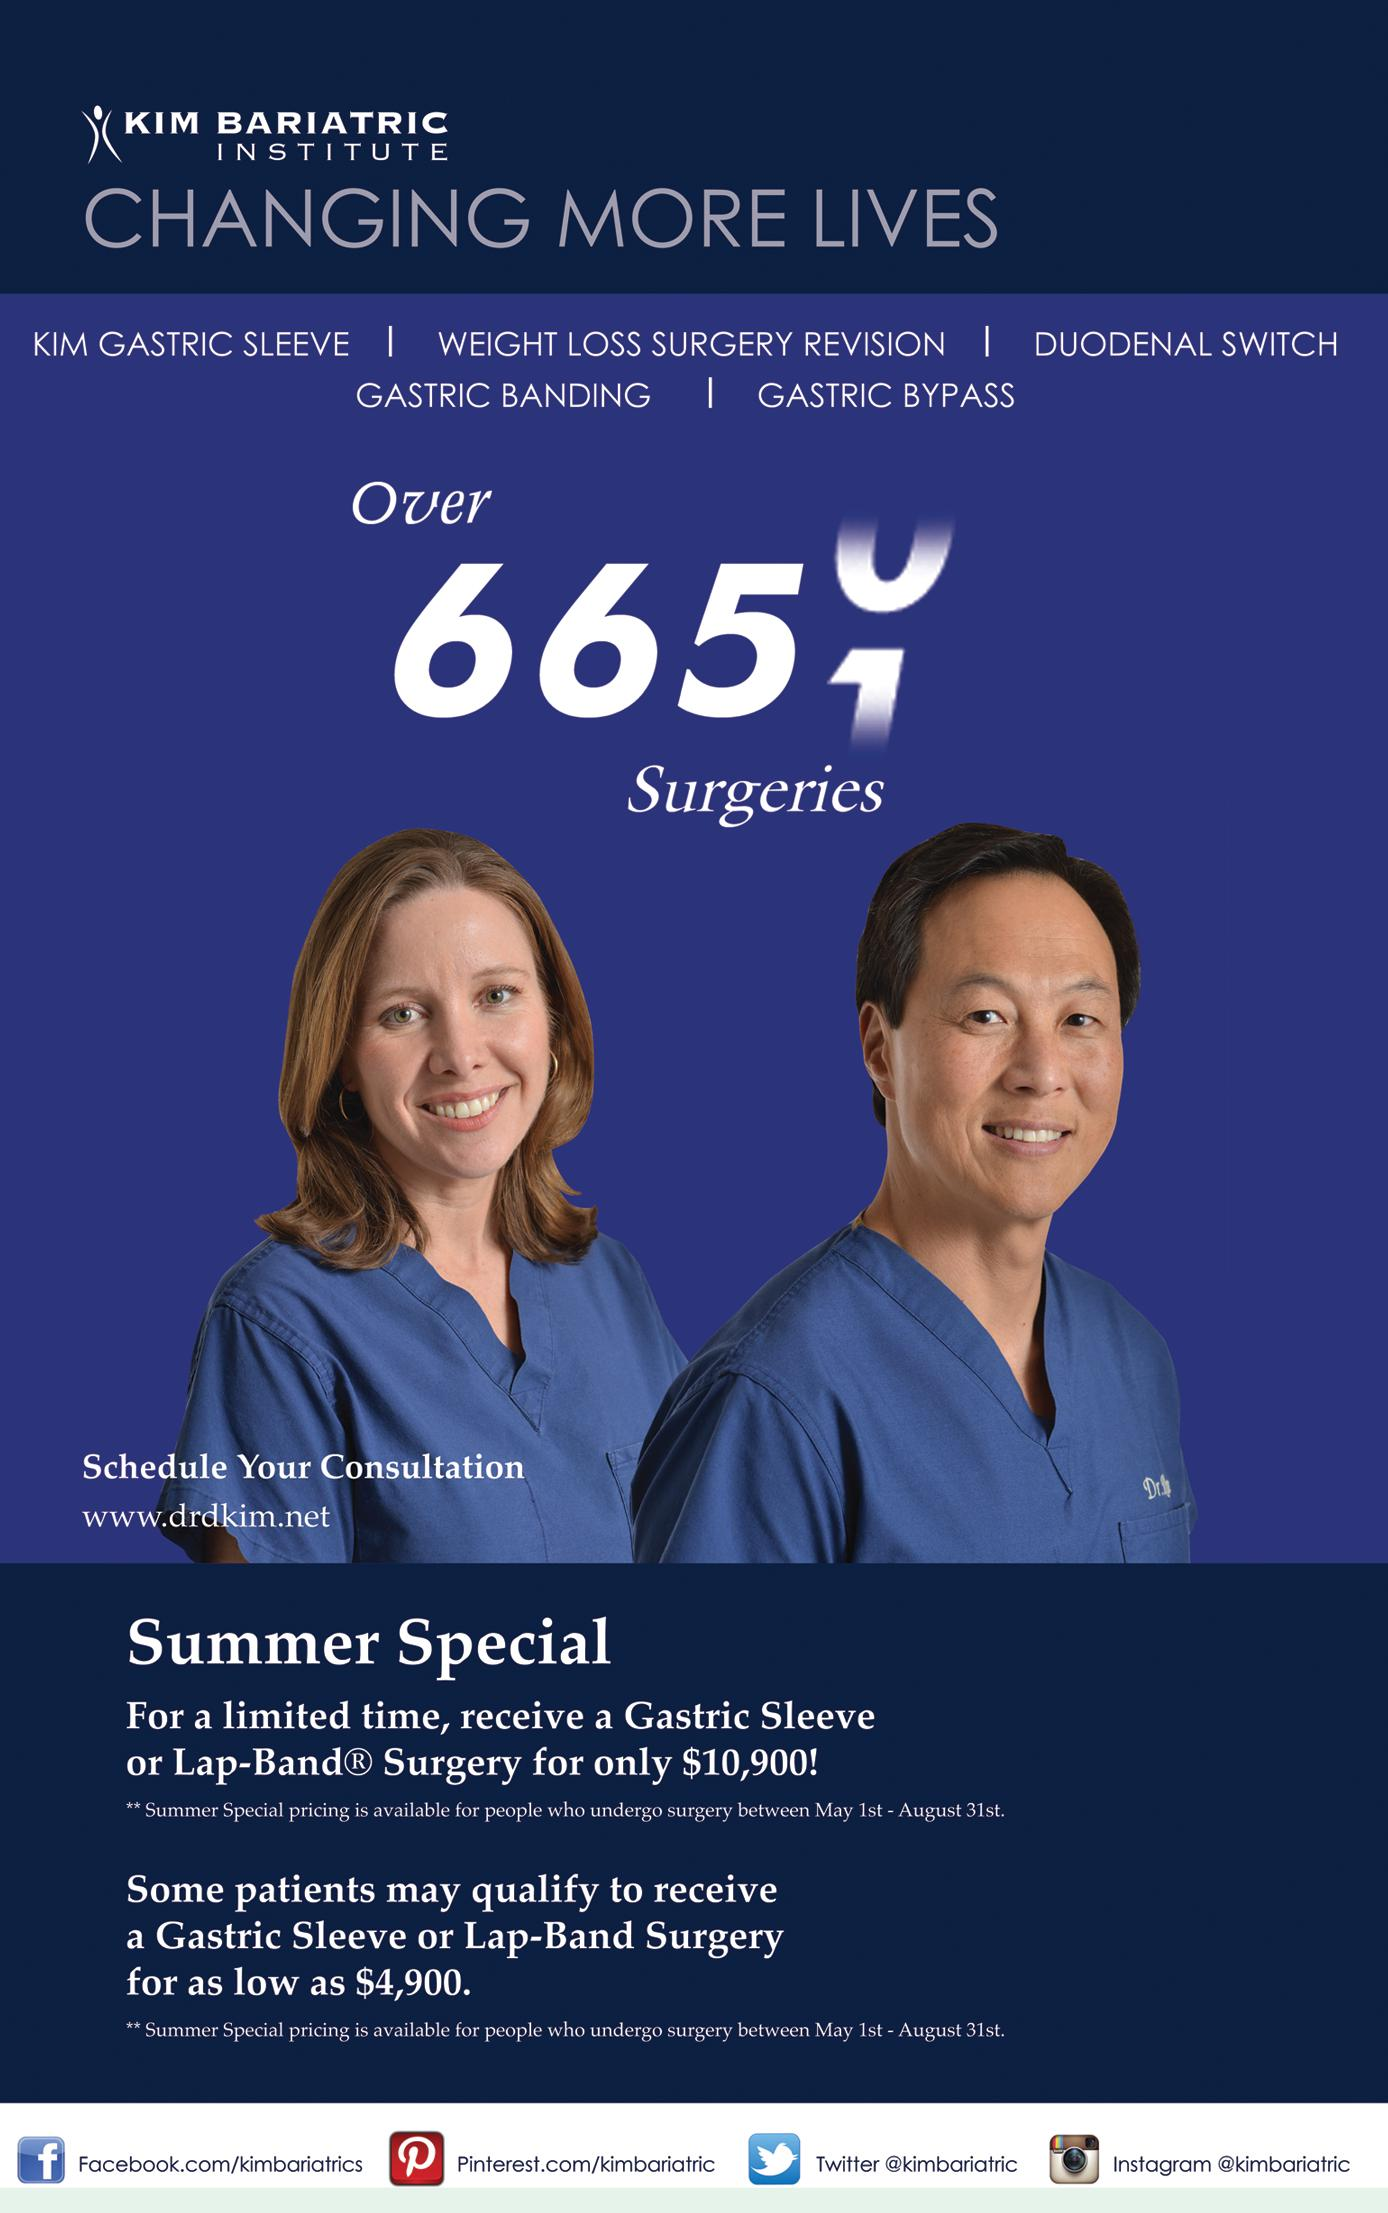 Live Life Again Center for Bariatric Surgery